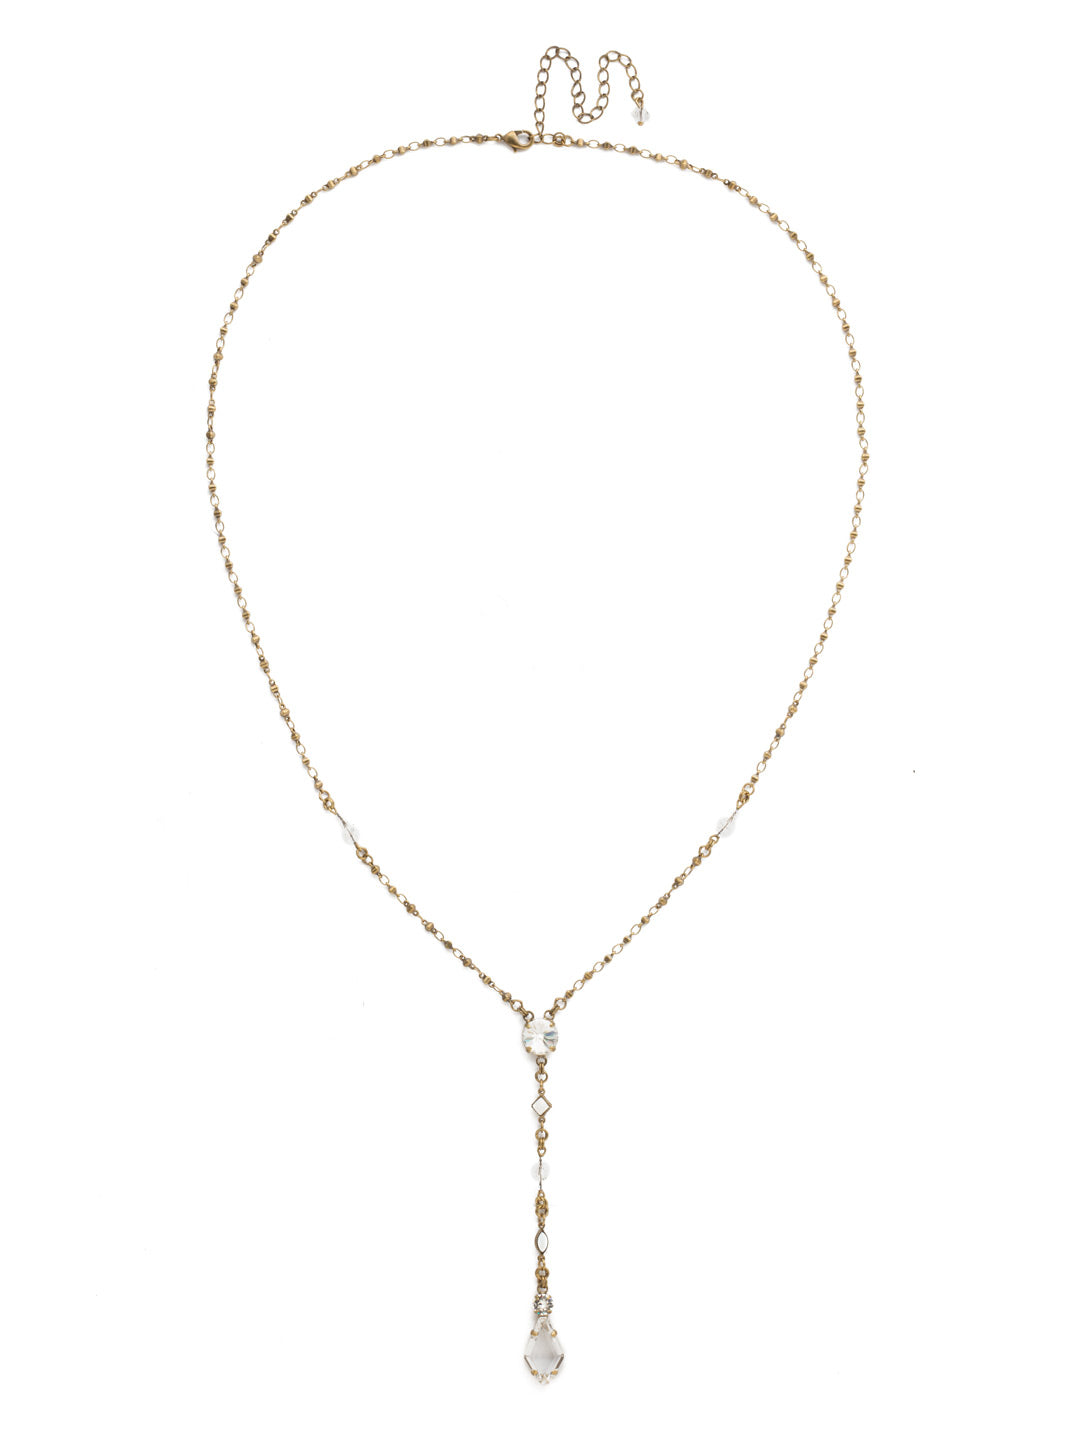 Regal Rhombus Y Pendant Necklace - NDK76AGCRY